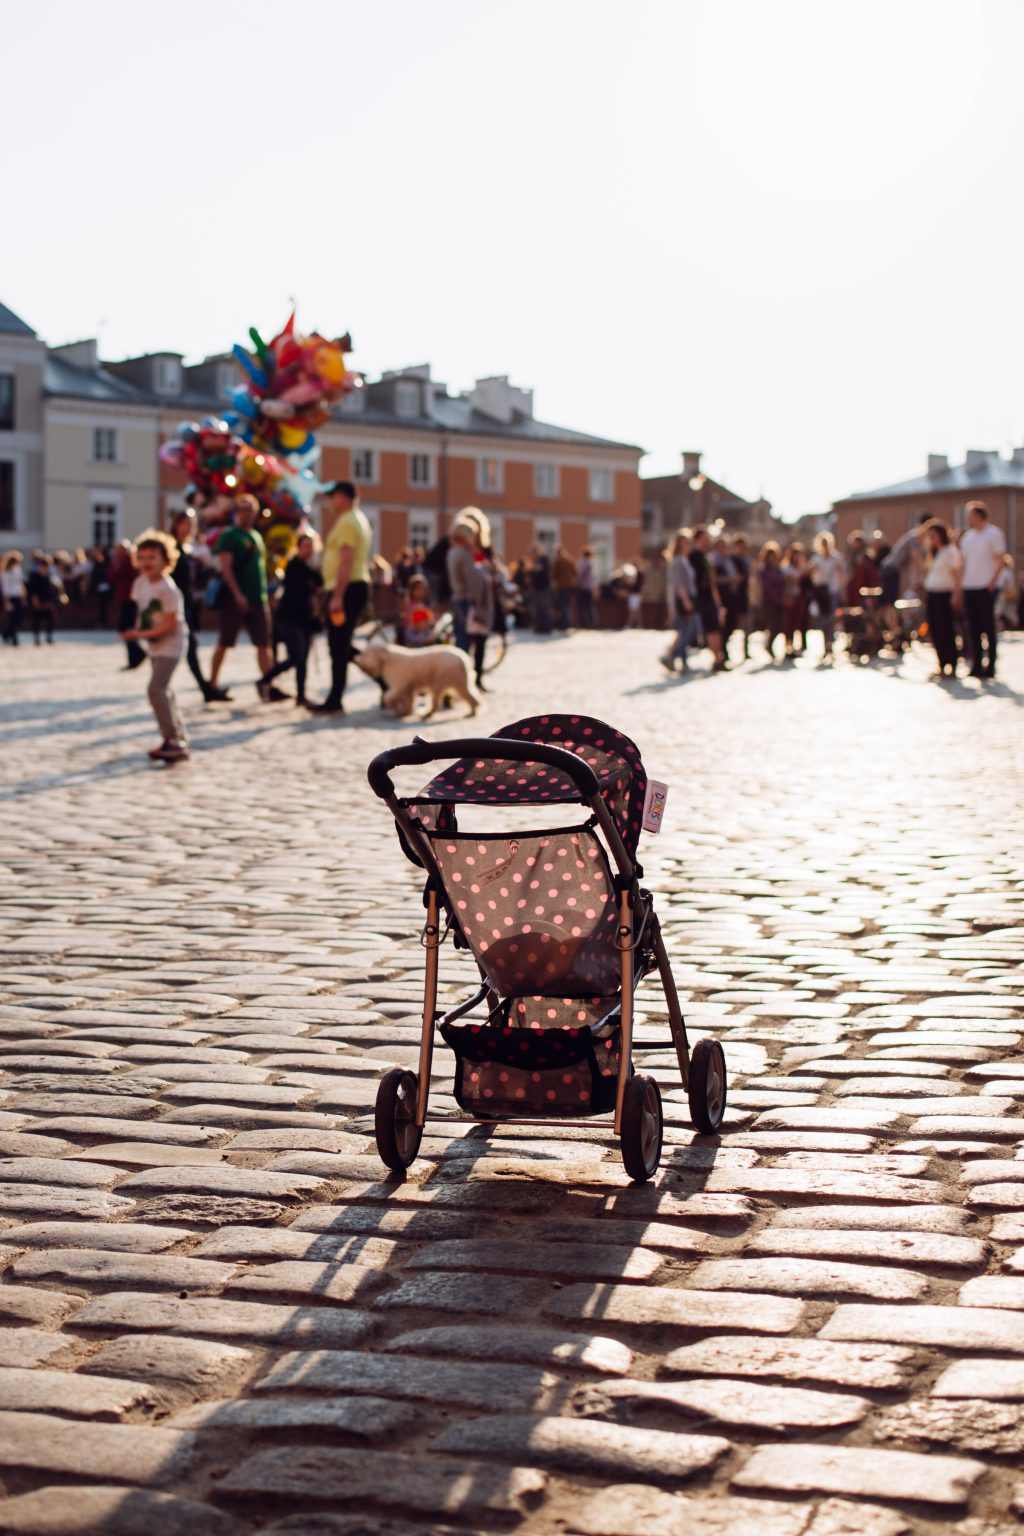 Empty stroller in a crowded Old Town square 2 - free stock photo